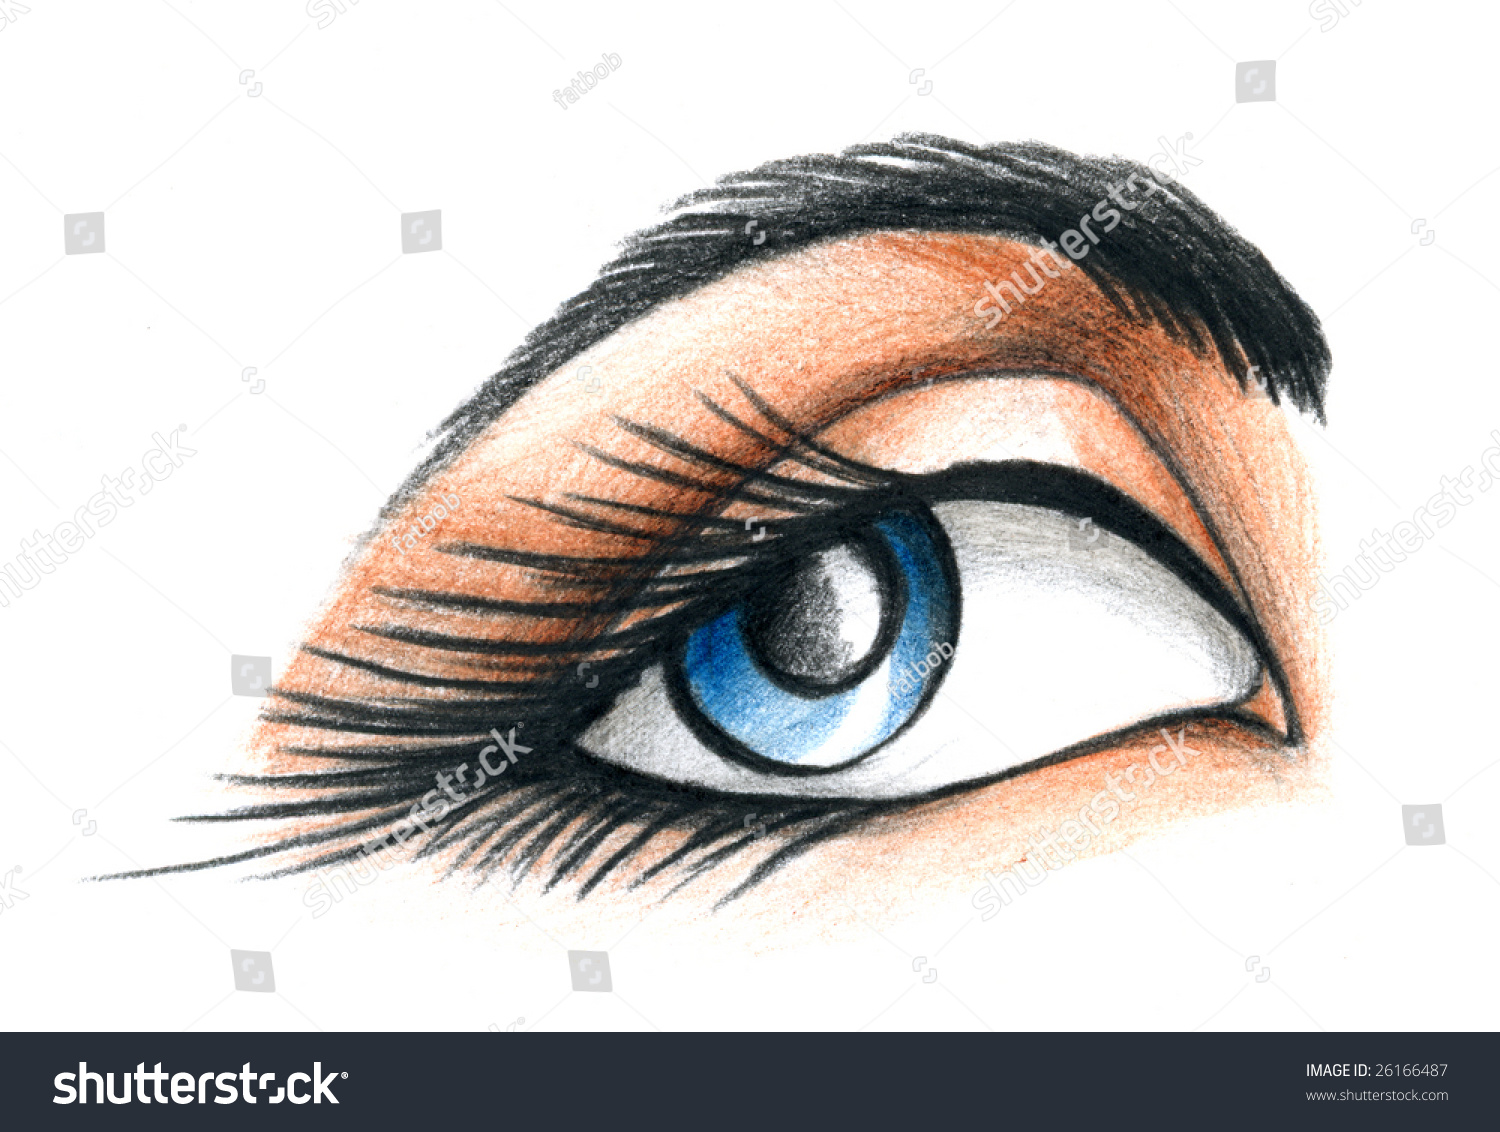 Color Pencil Illustration Of A Blue Eye With Brow And Long ...